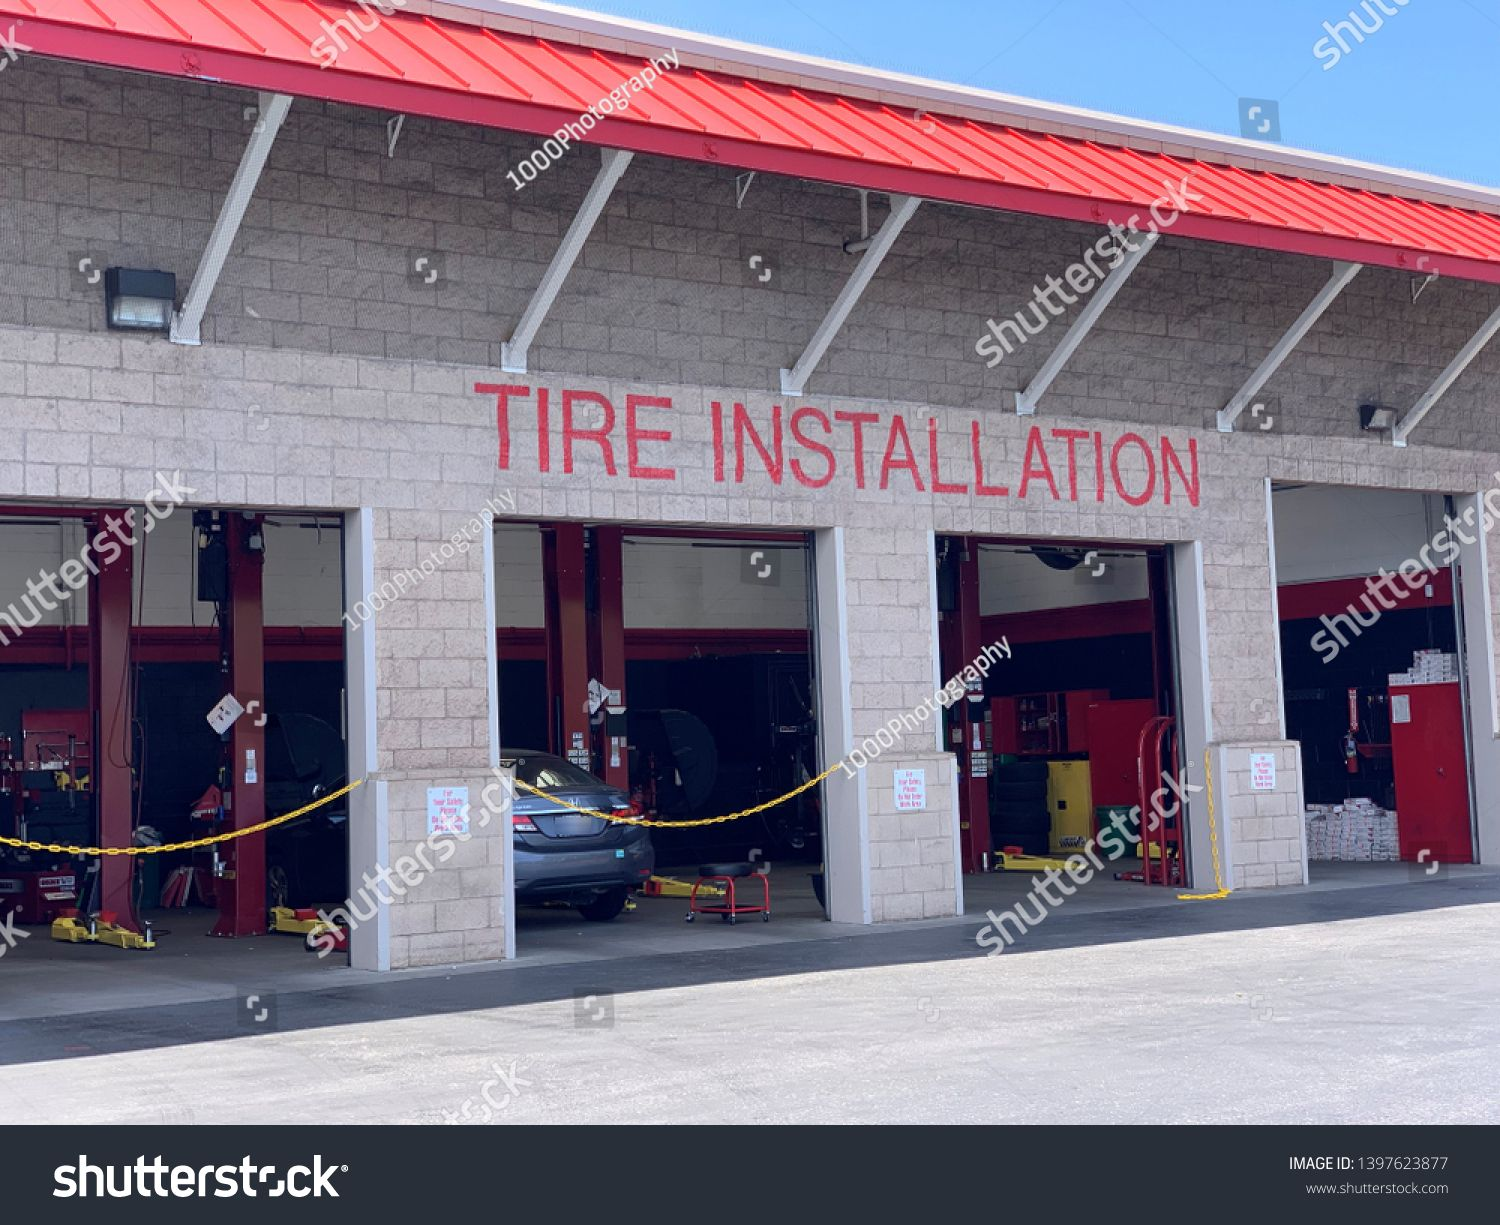 Mountain View Ca Usa May 5 2019 Tire Installation Center At A Costco Wholesale Store In Silicon Valley Sponsored Mountain View Stock Photos Ca Usa